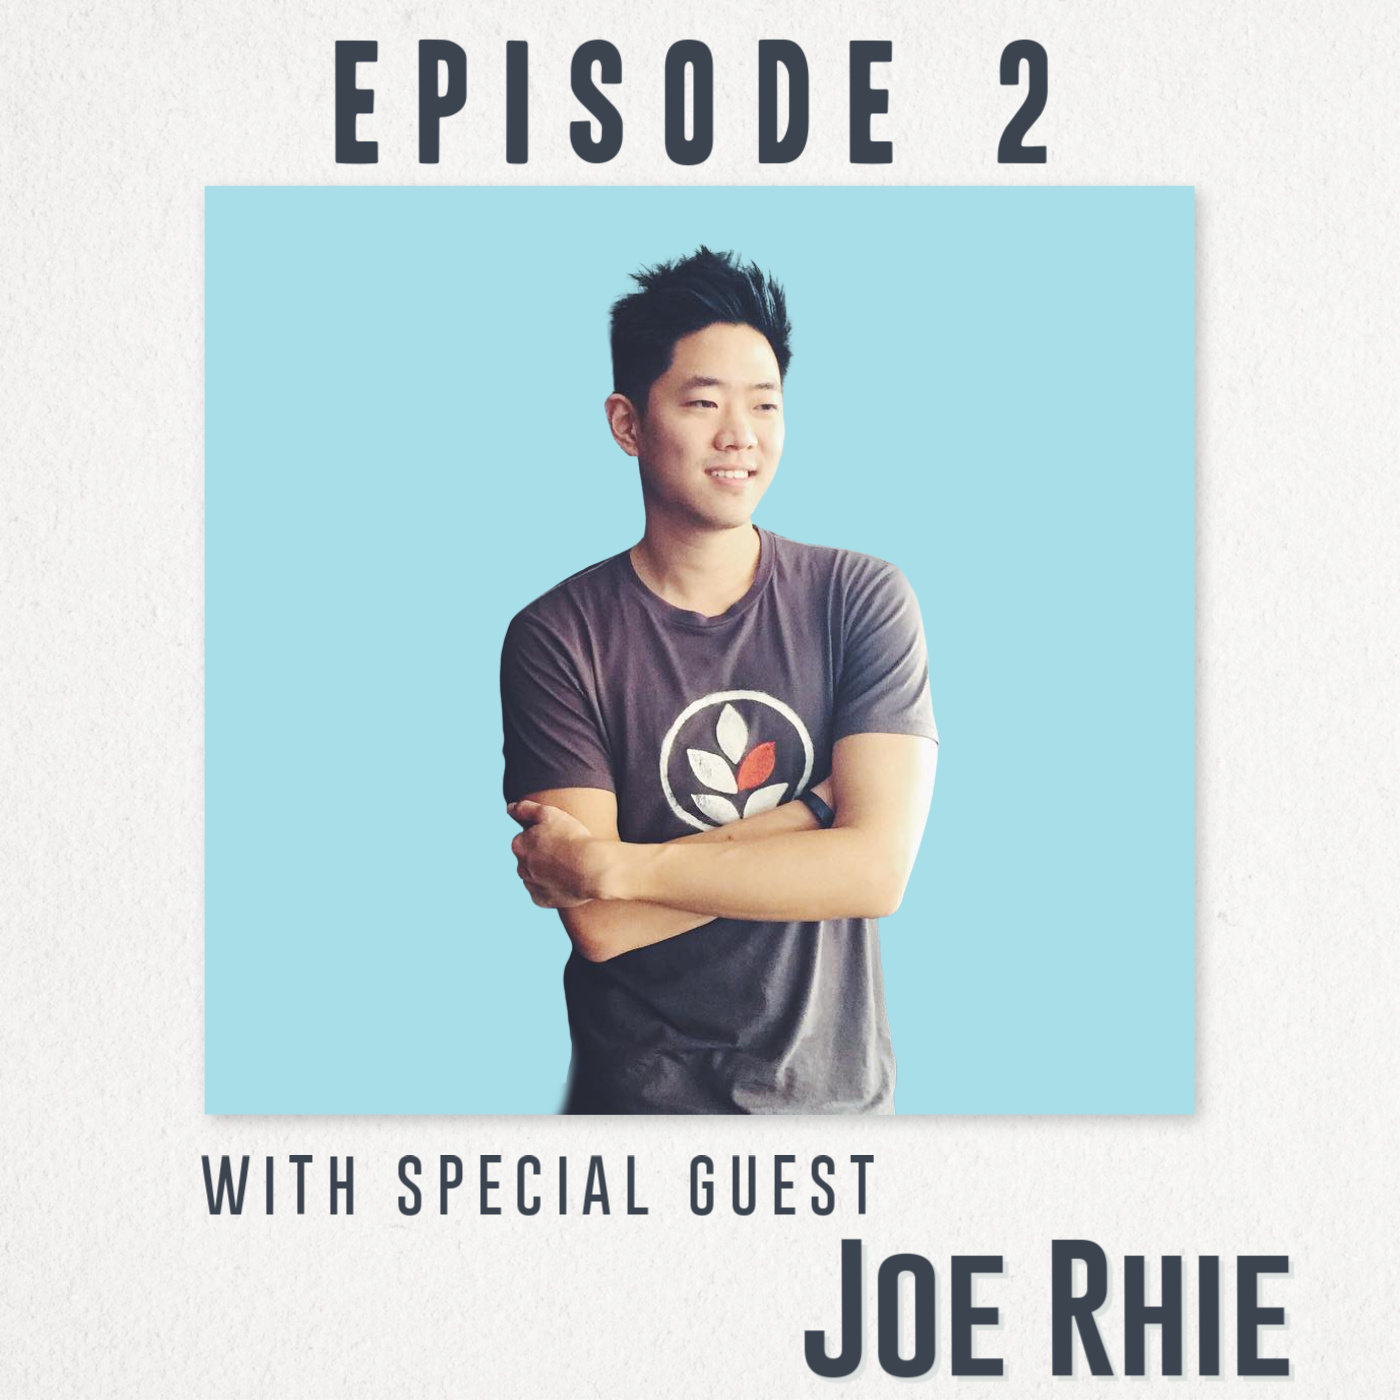 Ep. 2 with special guest Joe Rhie